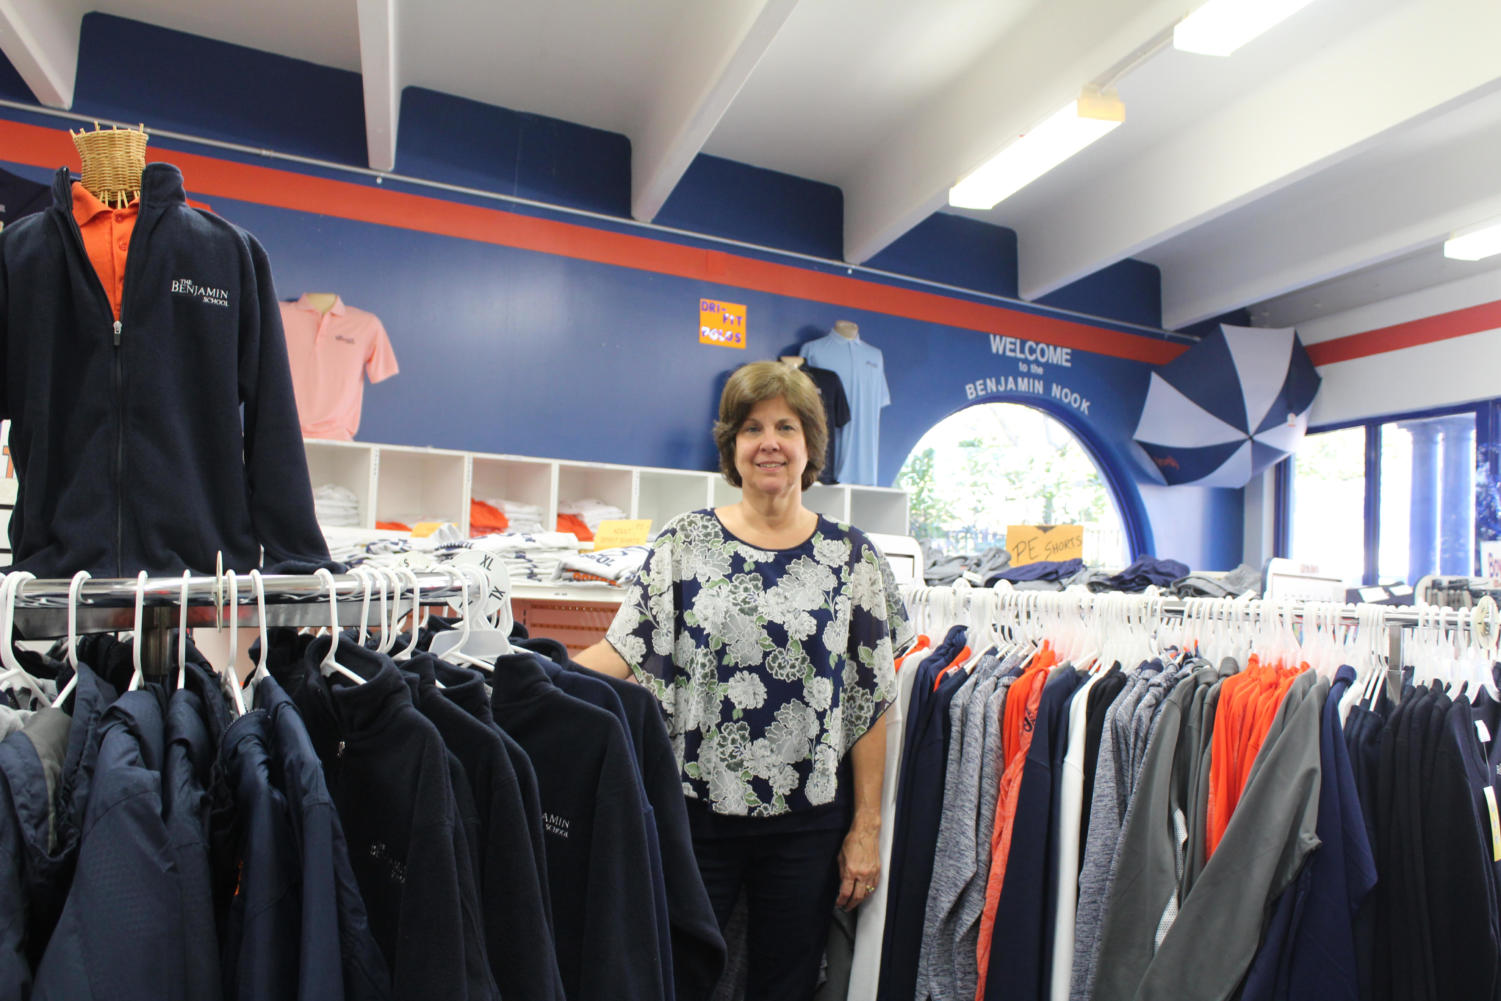 Ms. Rolanda Crawford stands inside the Nook surrounded by the apparel she keeps in stock for TBS families.